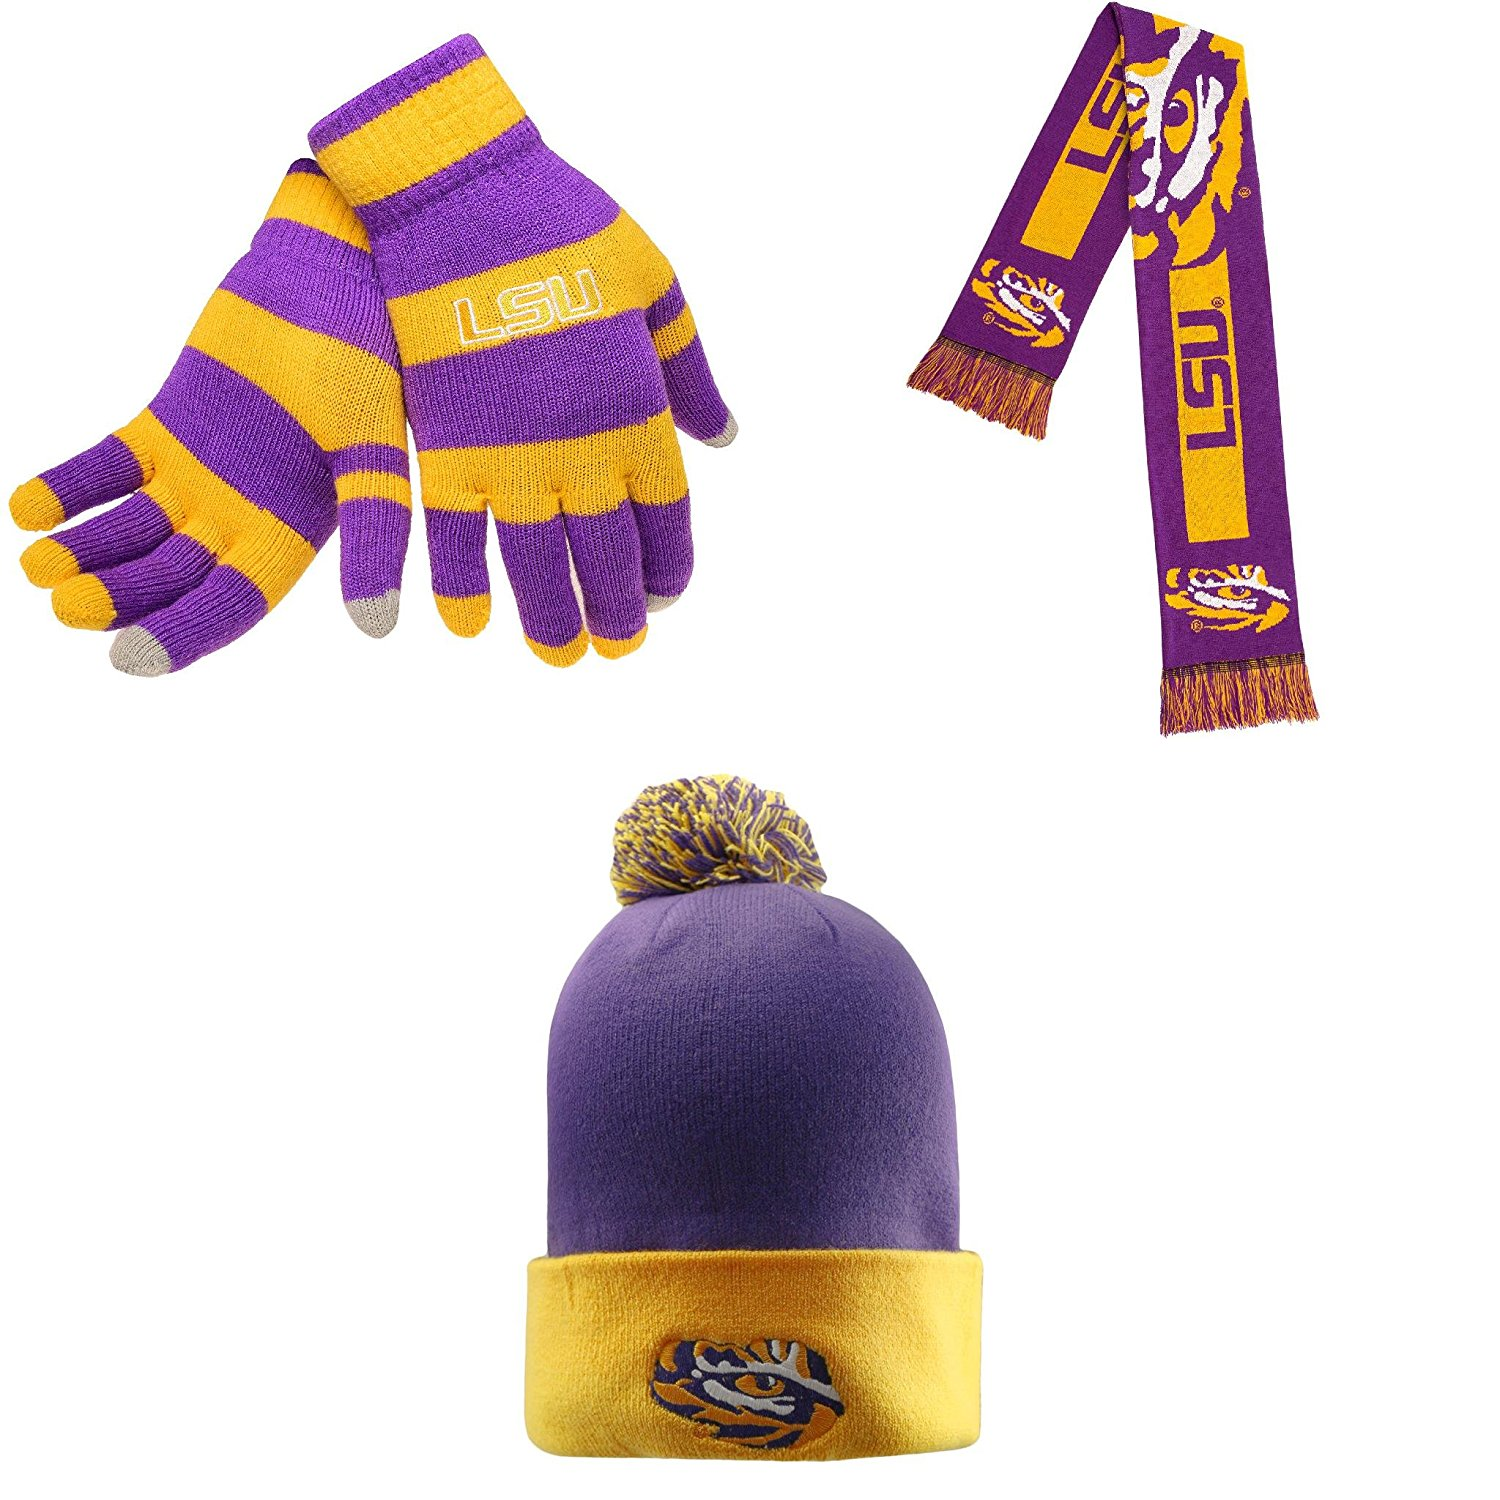 a389f199fe3 Get Quotations · NCAA LSU Tigers Glove Stripe Knit Big Logo Scarf And Pom  Beanie Hat 3 Pack Bundle